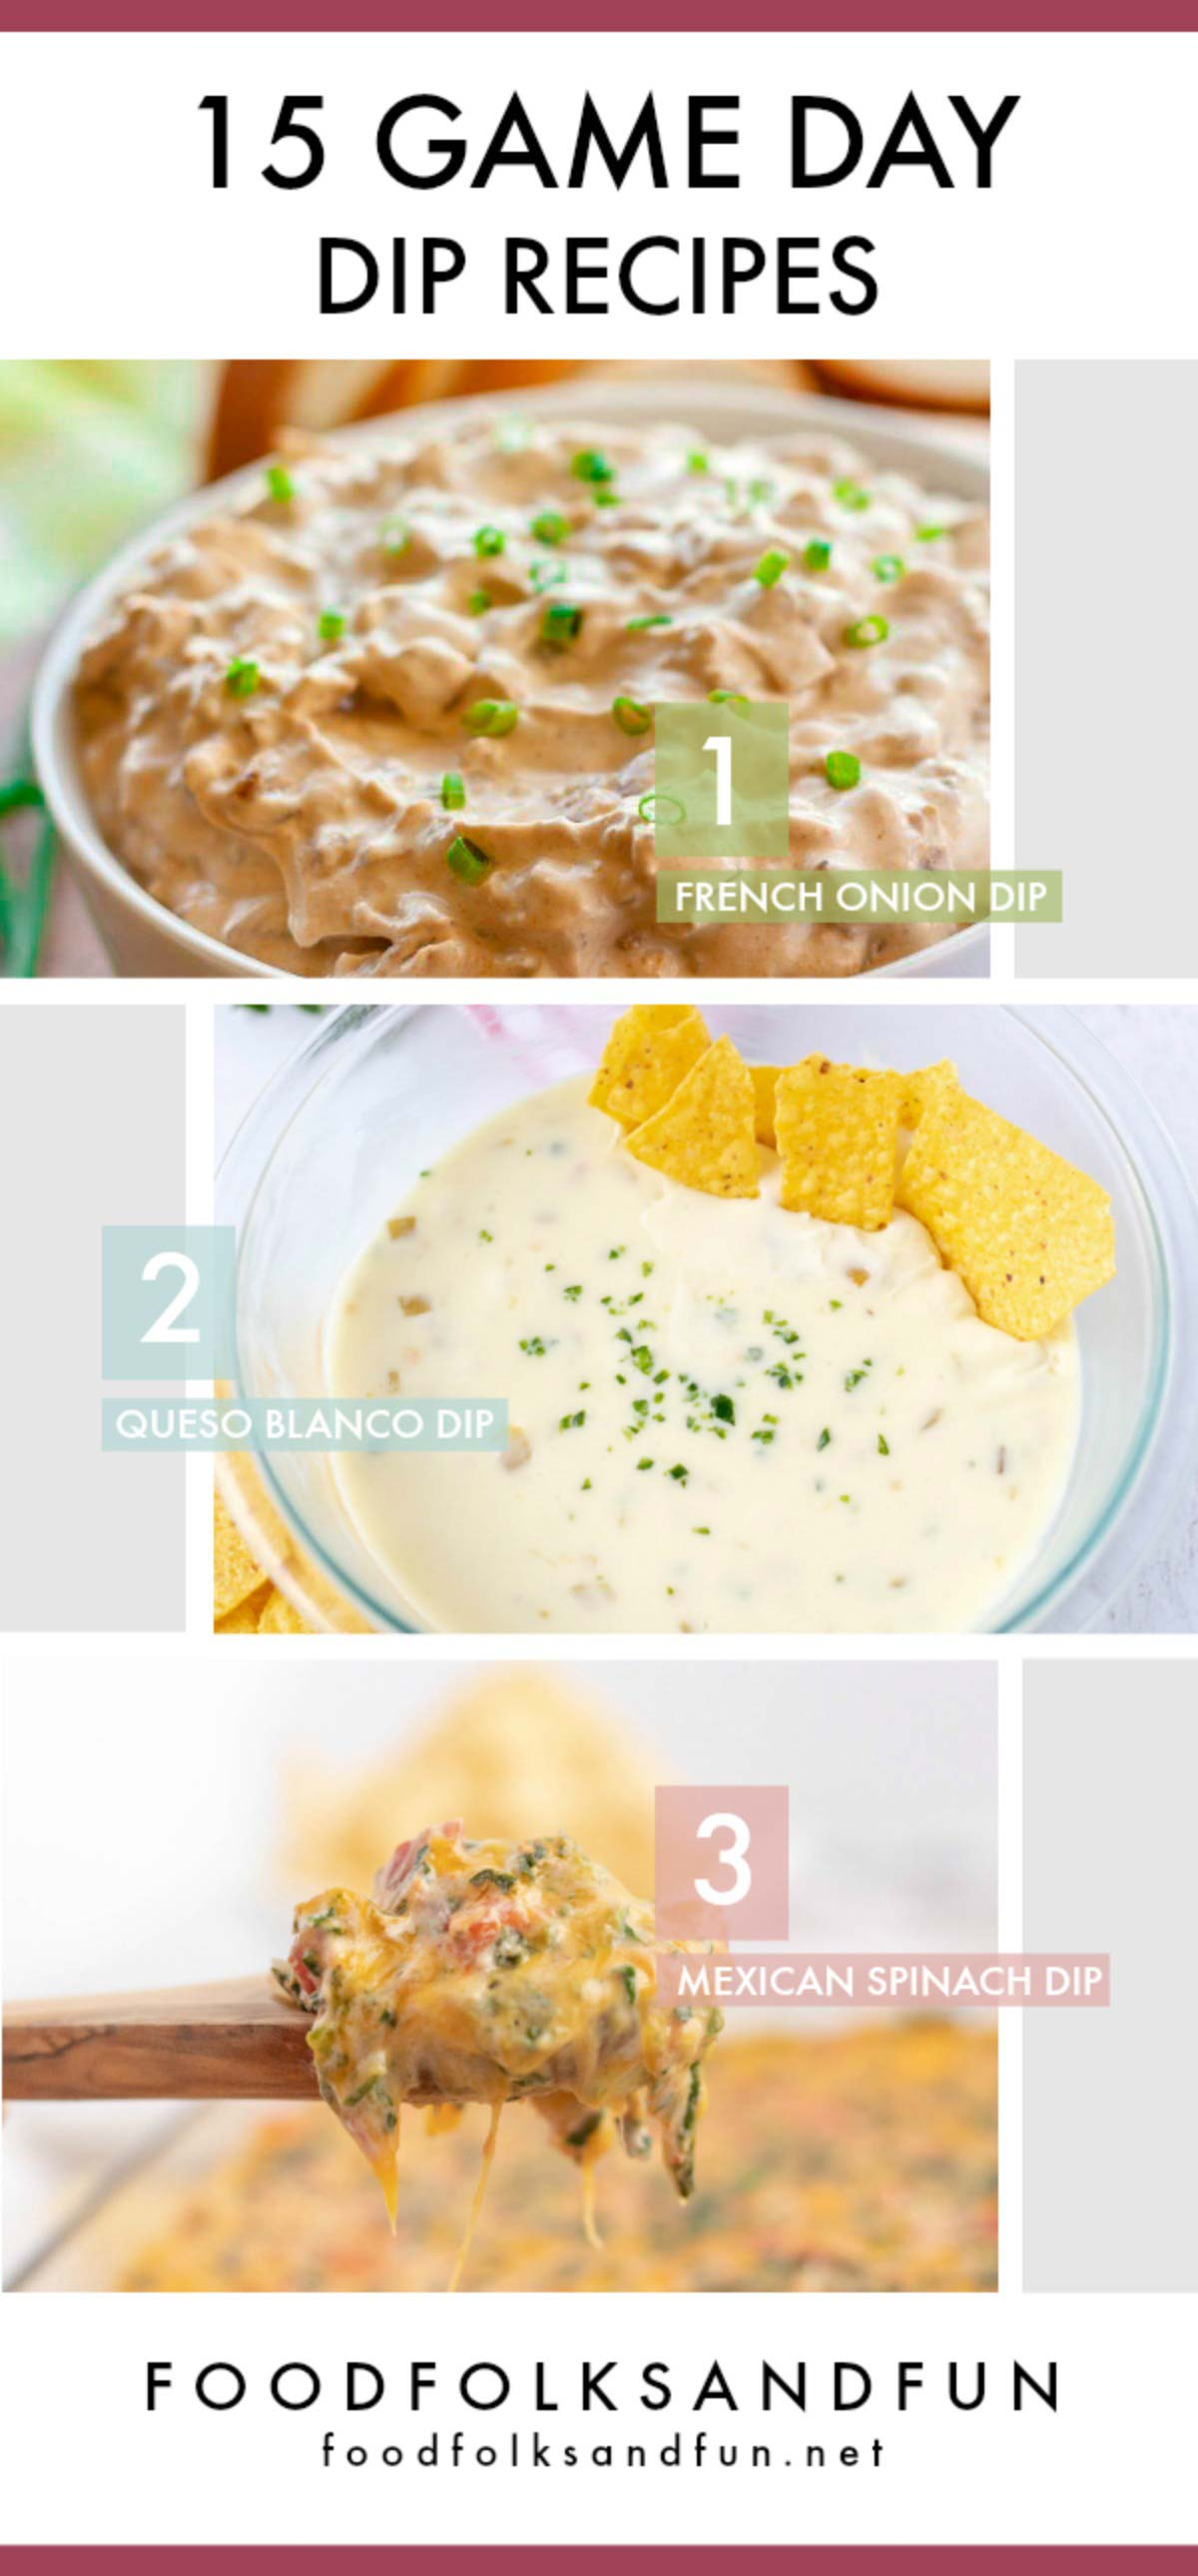 A collage of game day dips with text overlay for Pinterest